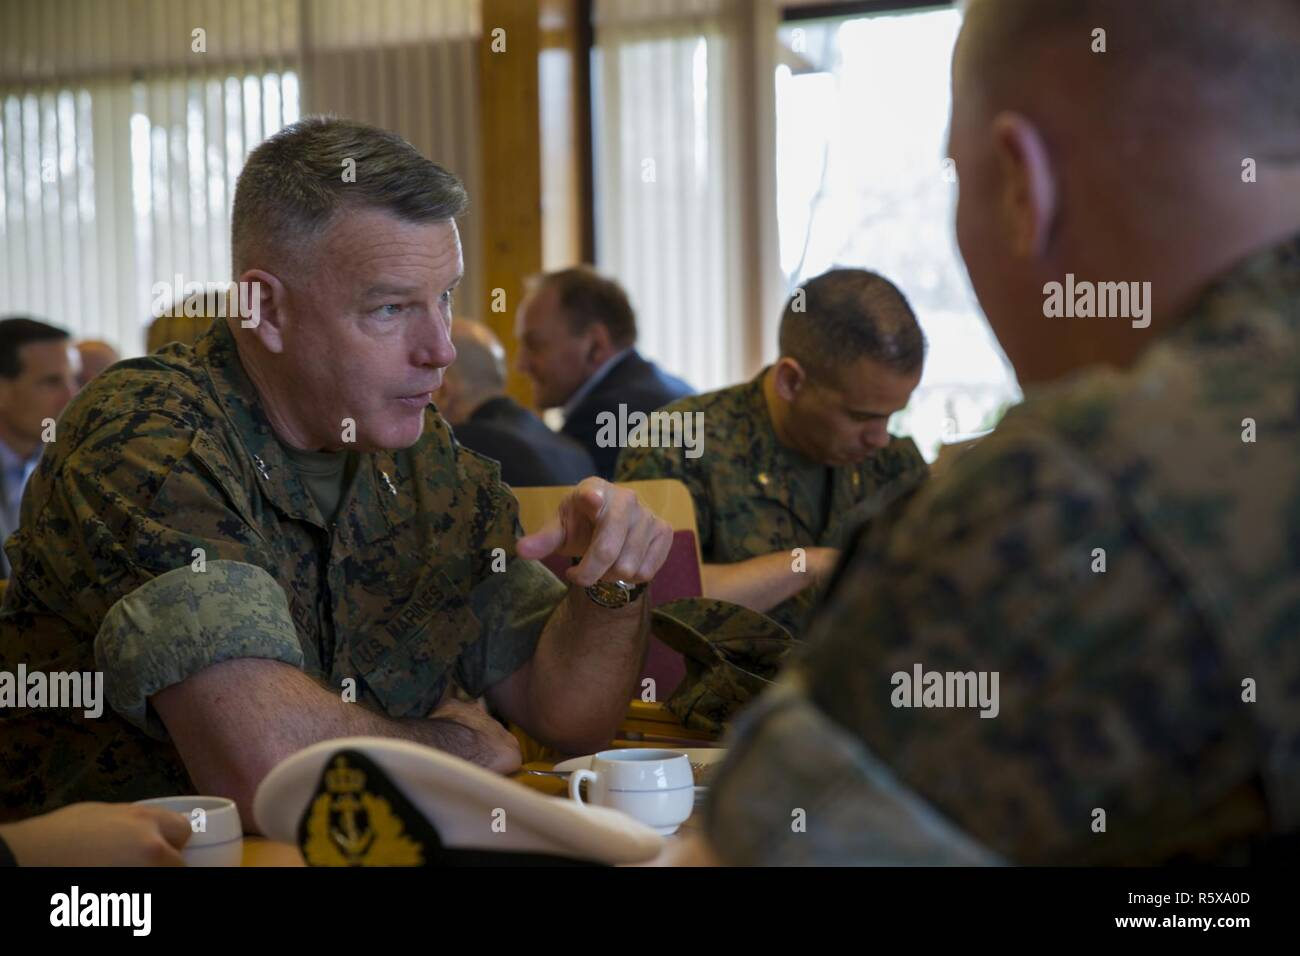 U.S. Marine Corps Maj. Gen. Niel Nelson, commanding general of Marine Corps Forces Europe and Africa, shares a meal with Marines from Marine Rotational Force Europe 17.1 (MRF-E) at Vaernes Garnison, Norway, April 18, 2017. Nelson visited with a congressional delegation to show the Marine Corps' dedication to peace and facilitate communication with partner nations. MRF-E and NATO Allies must preserve our mutual commitment and trust to confront evolving strategic challenges together. Stock Photo